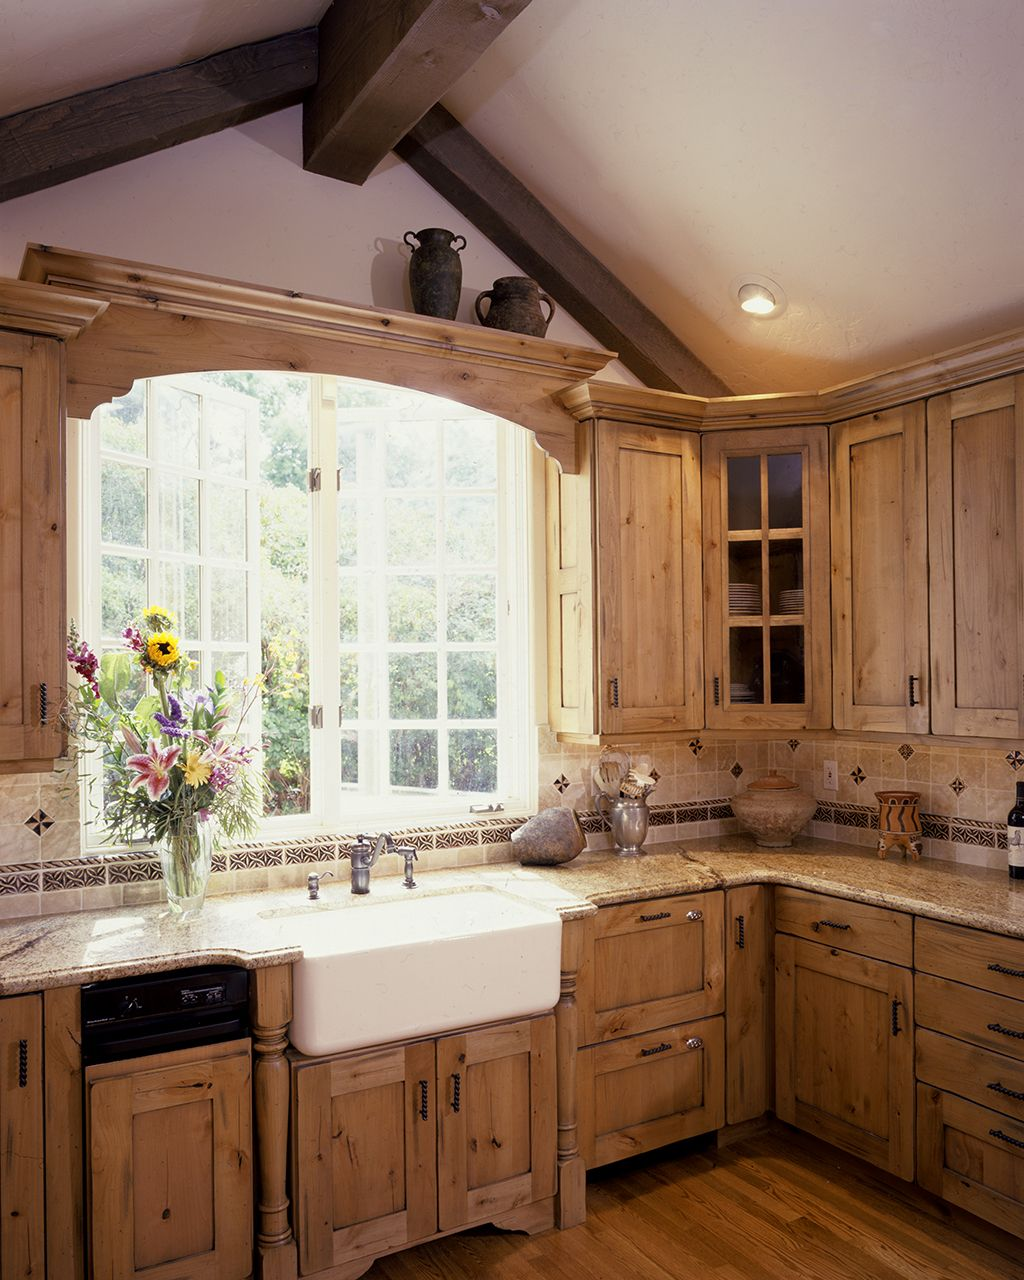 Bright Country Kitchen In The Suburbs Rustic Farmhouse